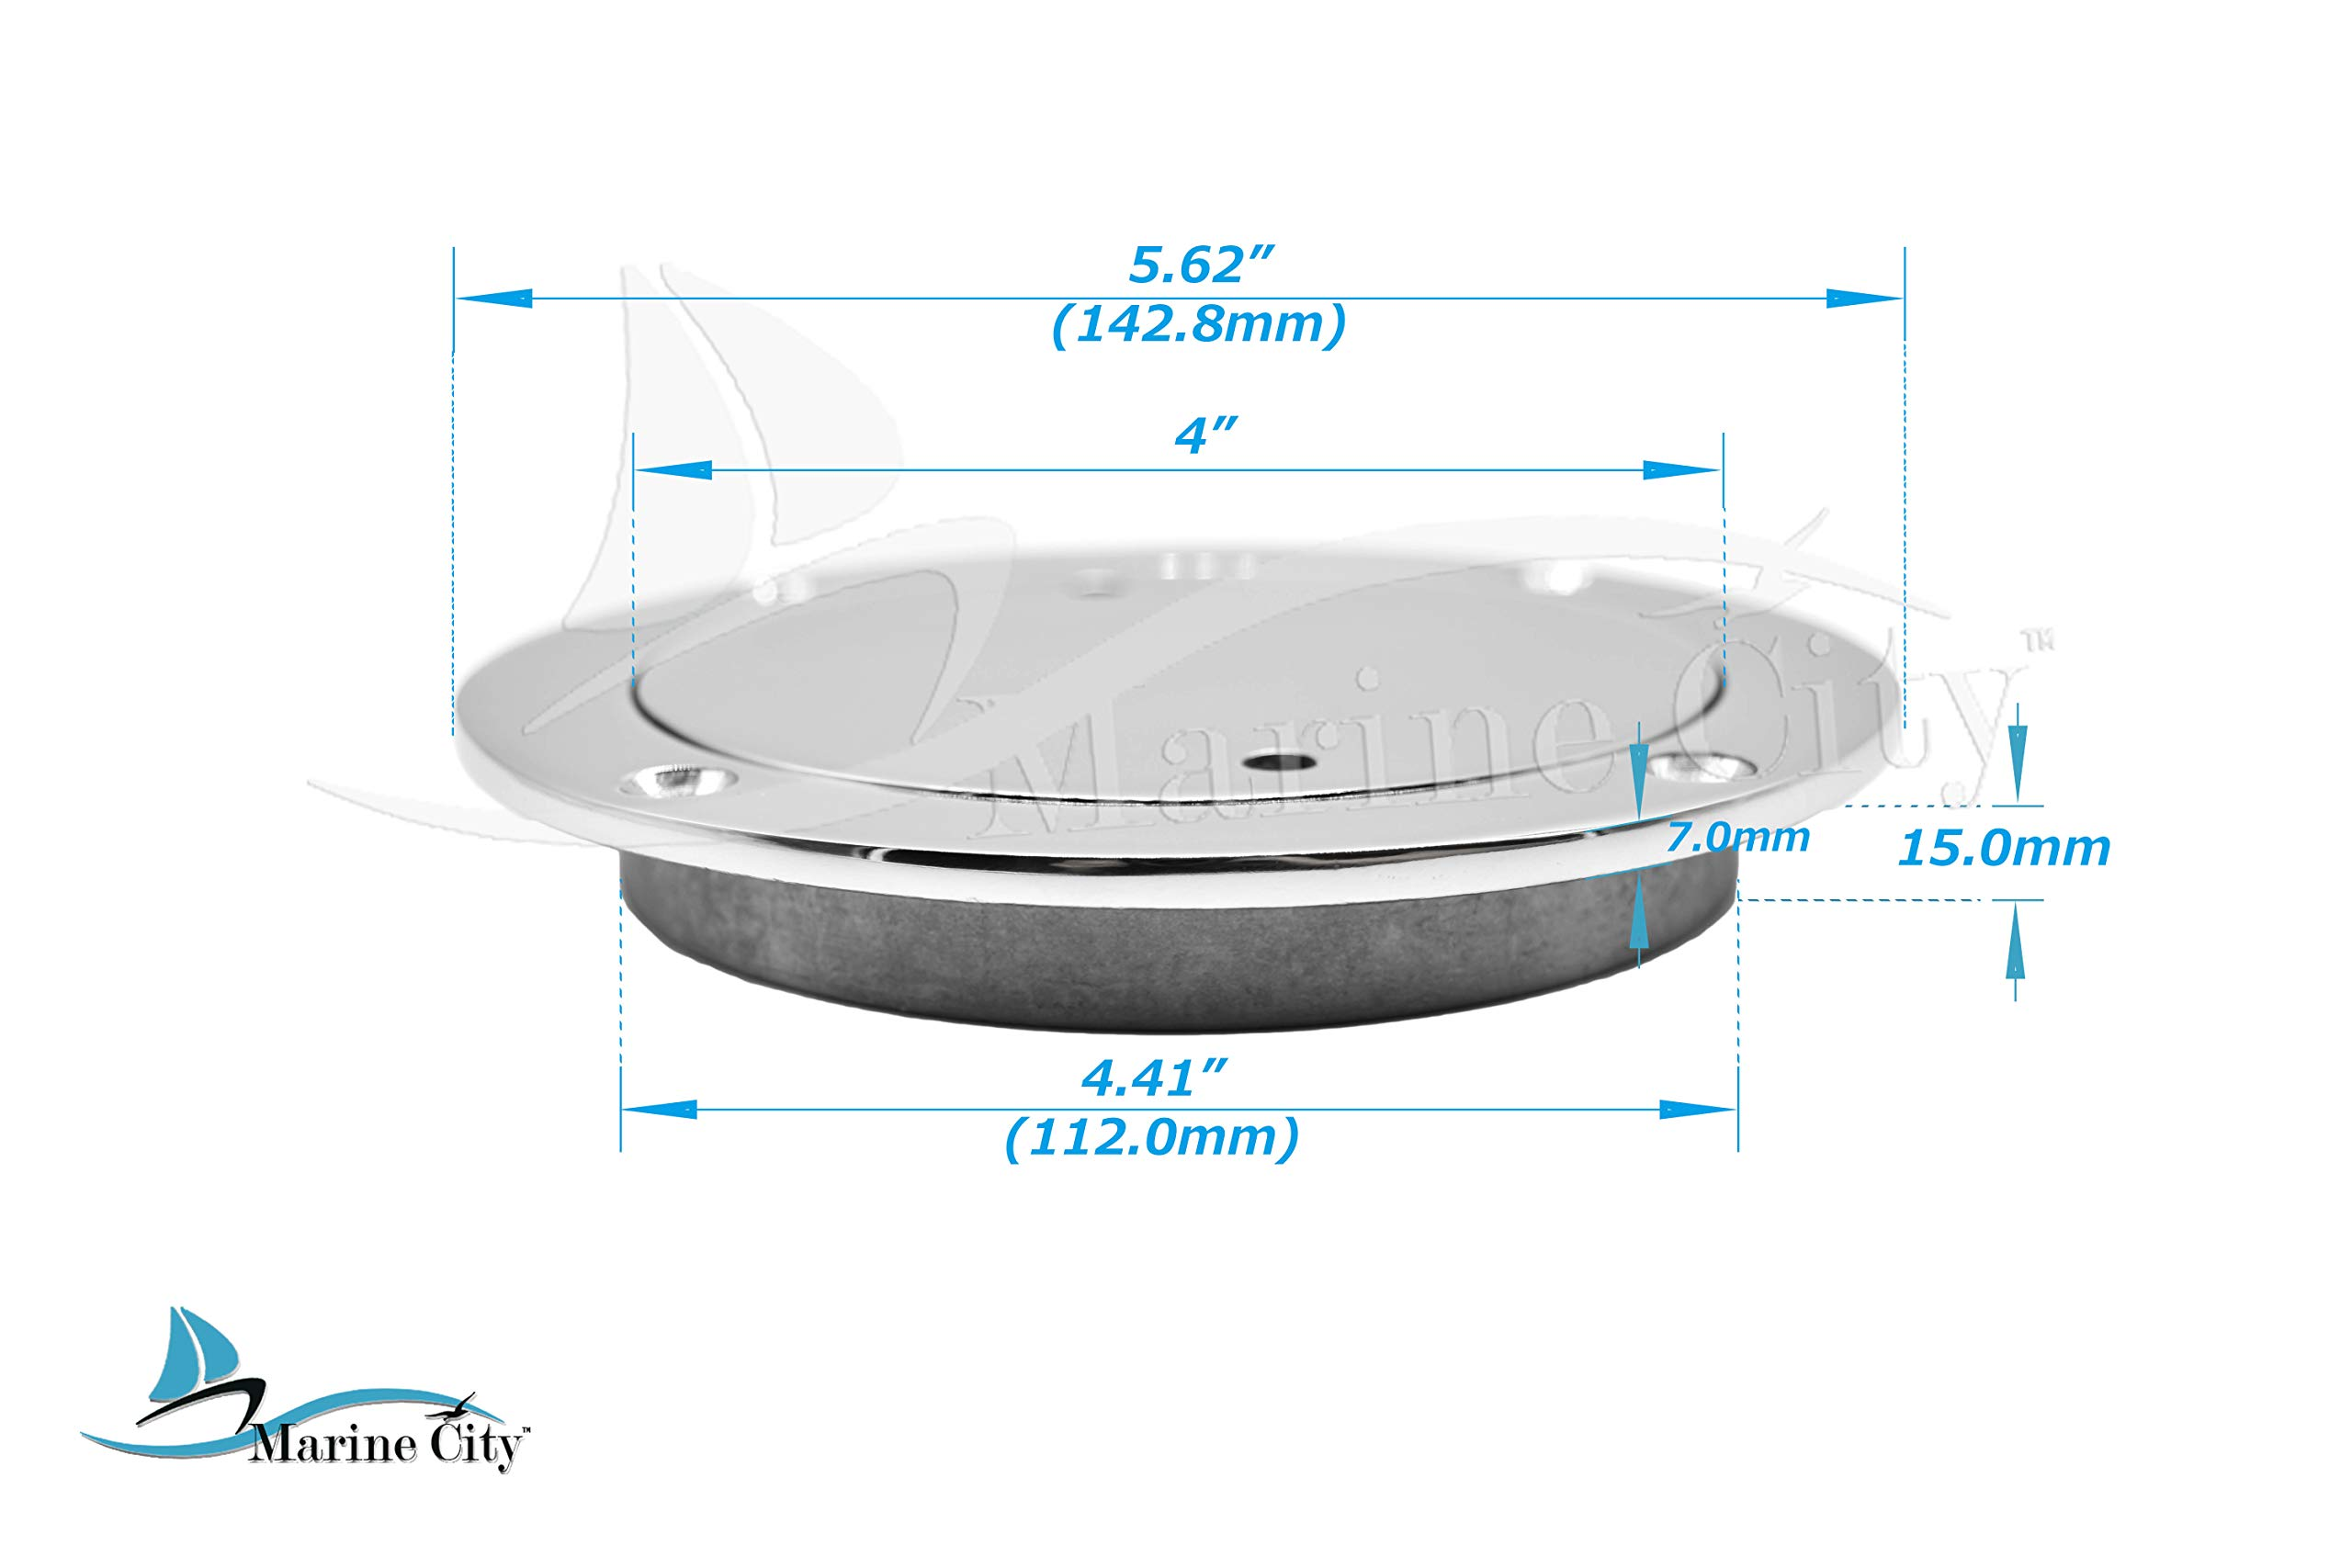 Marine City 4 Inches Round 316 Stainless Steel Inspection Deck Plate for Boat by MARINE CITY